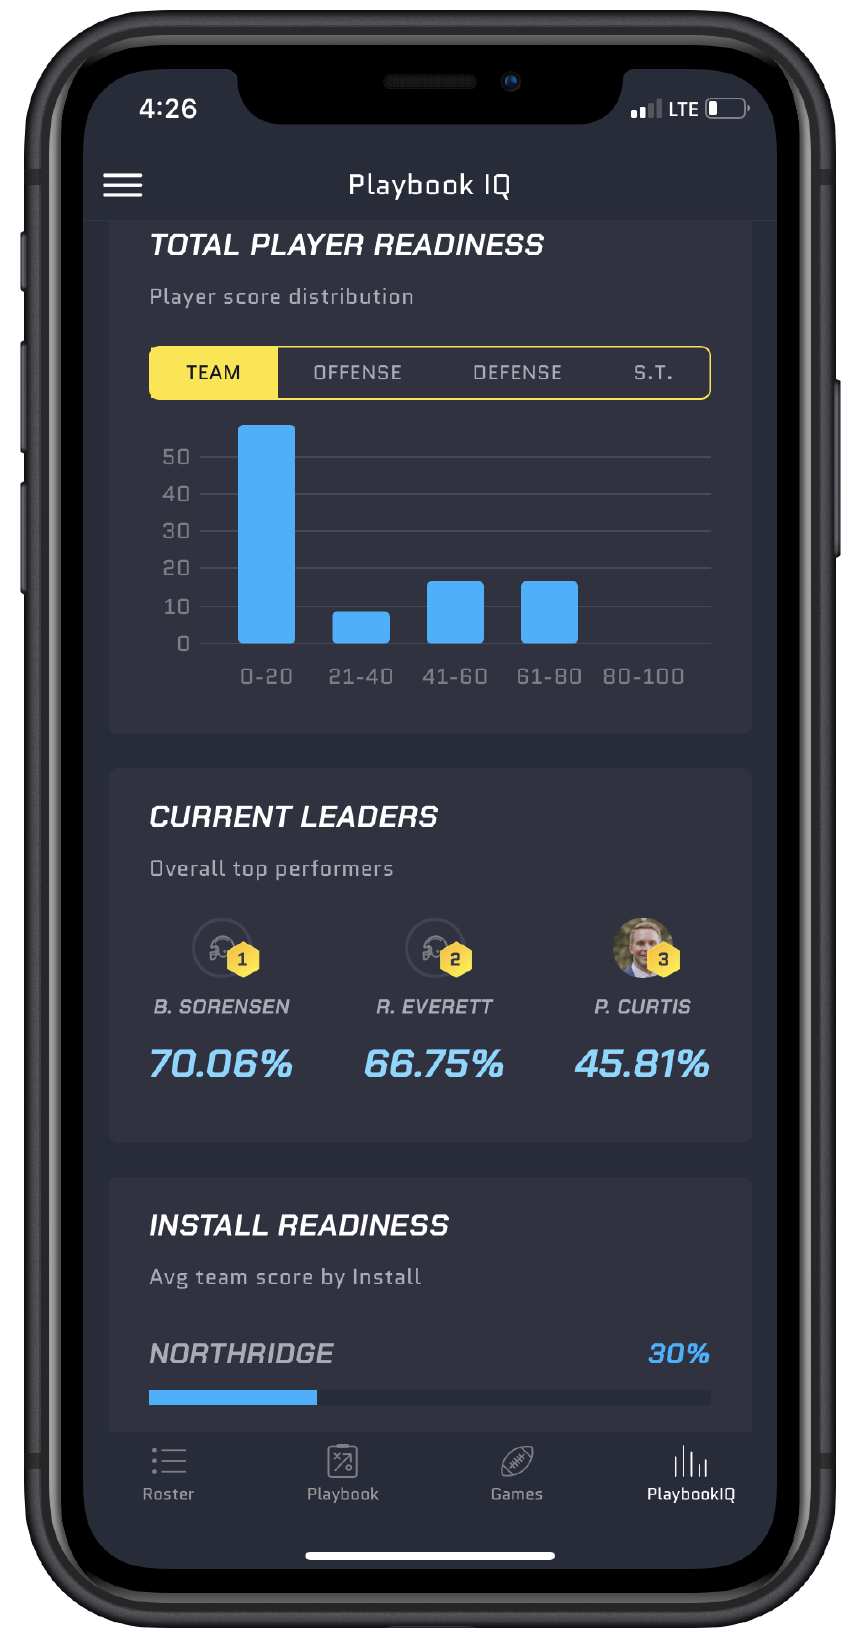 Online Football Playbooks and Player Readiness Scores on Mobile Phone